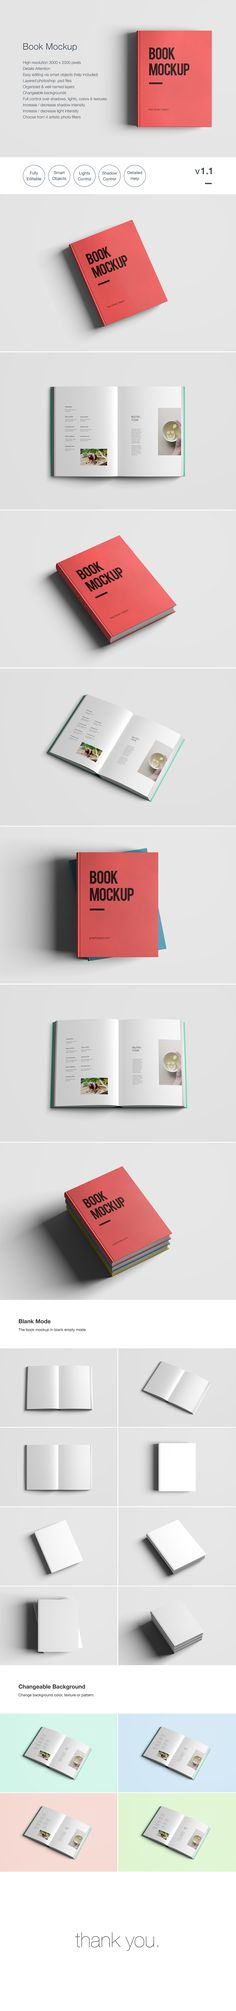 A free psd book mockup template for realistic printed book presentation. Photoshop format easy to edit file.